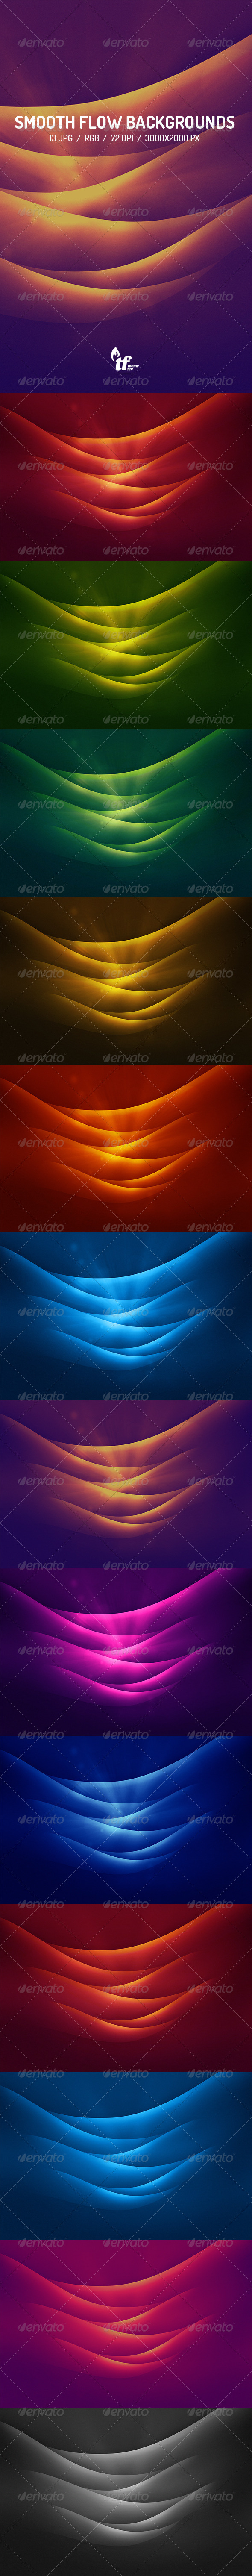 GraphicRiver 13 Smooth Flow Backgrounds 7614241